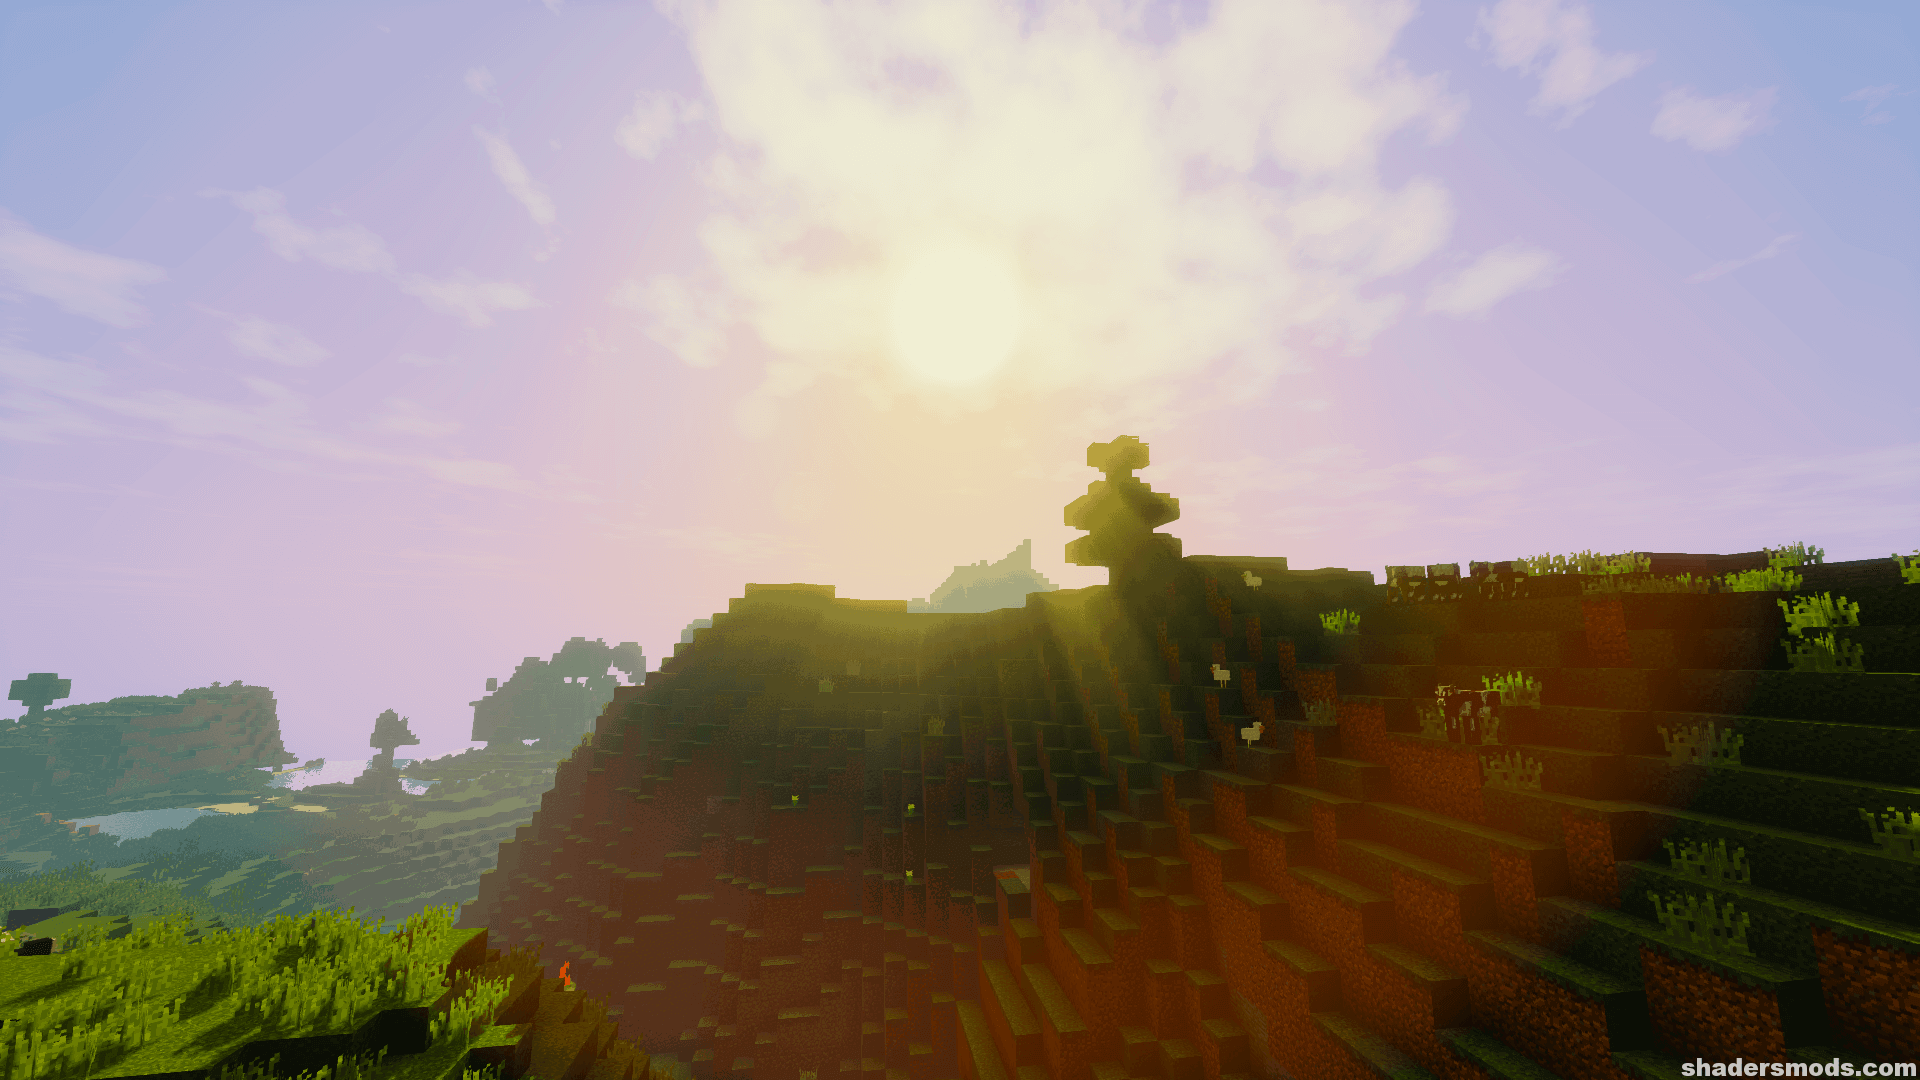 RRe36's Shaders Mod